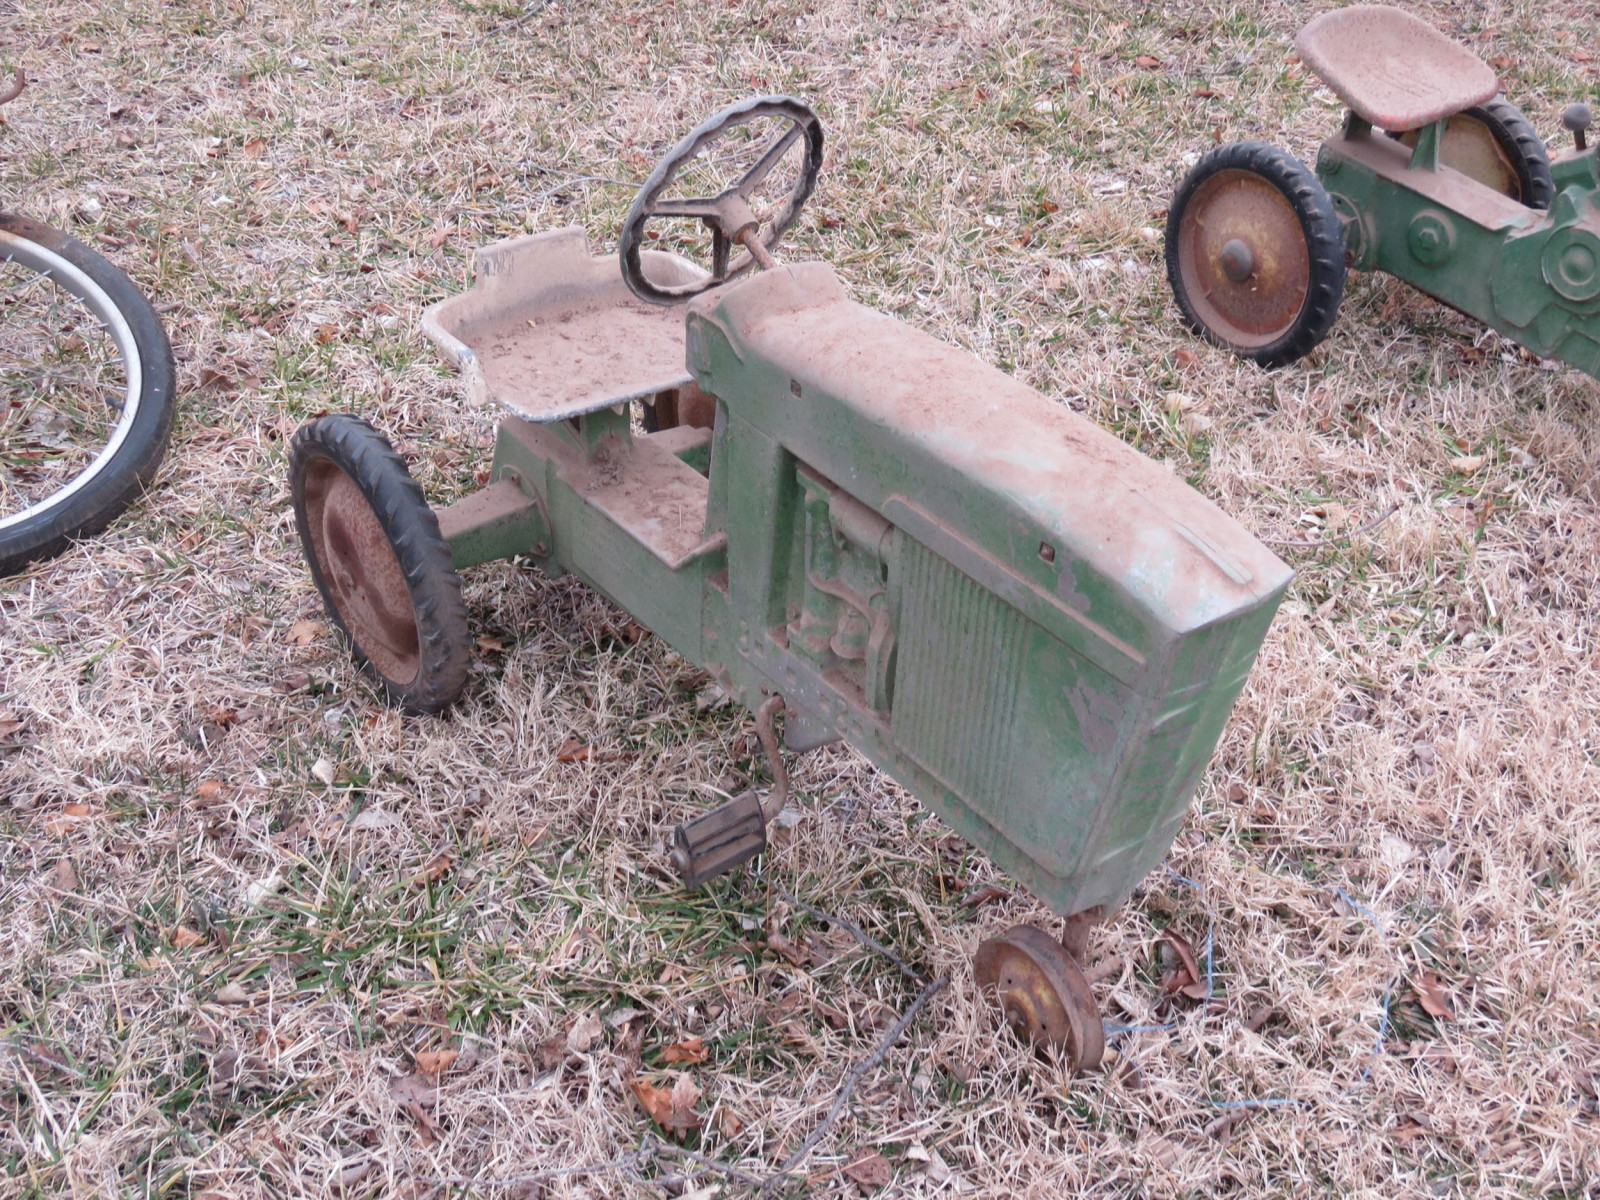 John Deere Model A Pedal Tractor - Image 2